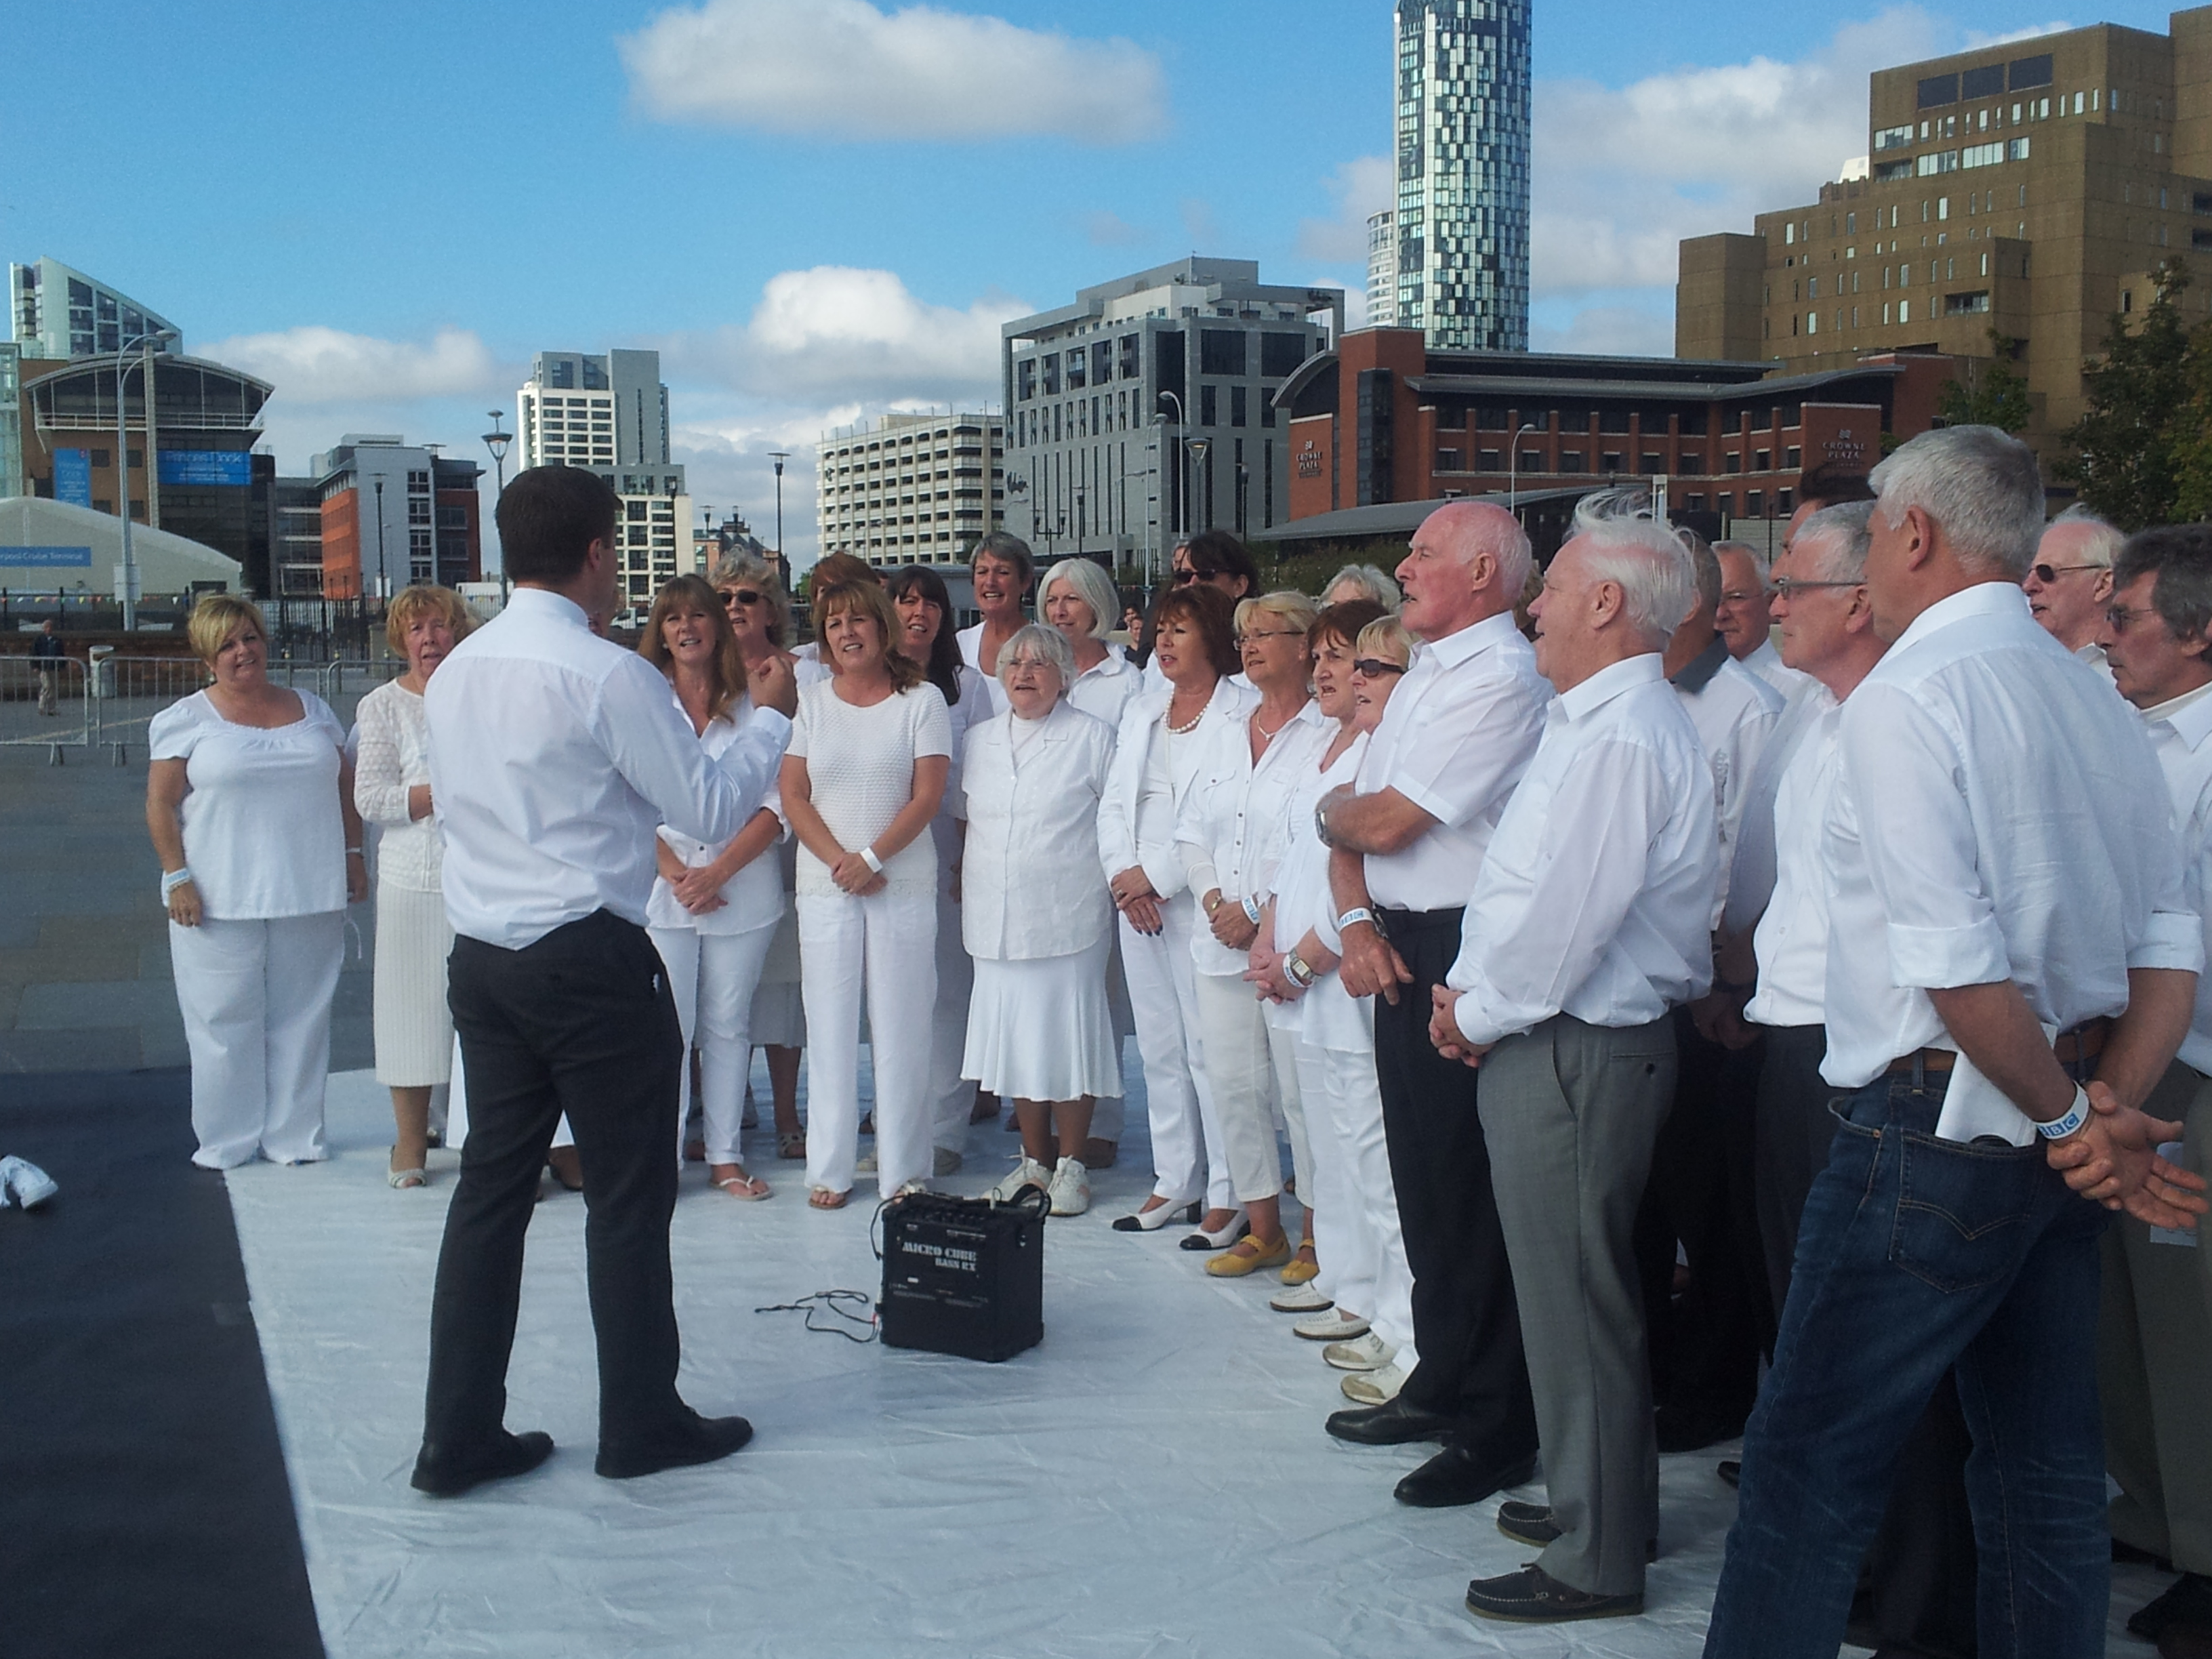 Mersey Wave Choir Performing at the Merseyside Mondrian